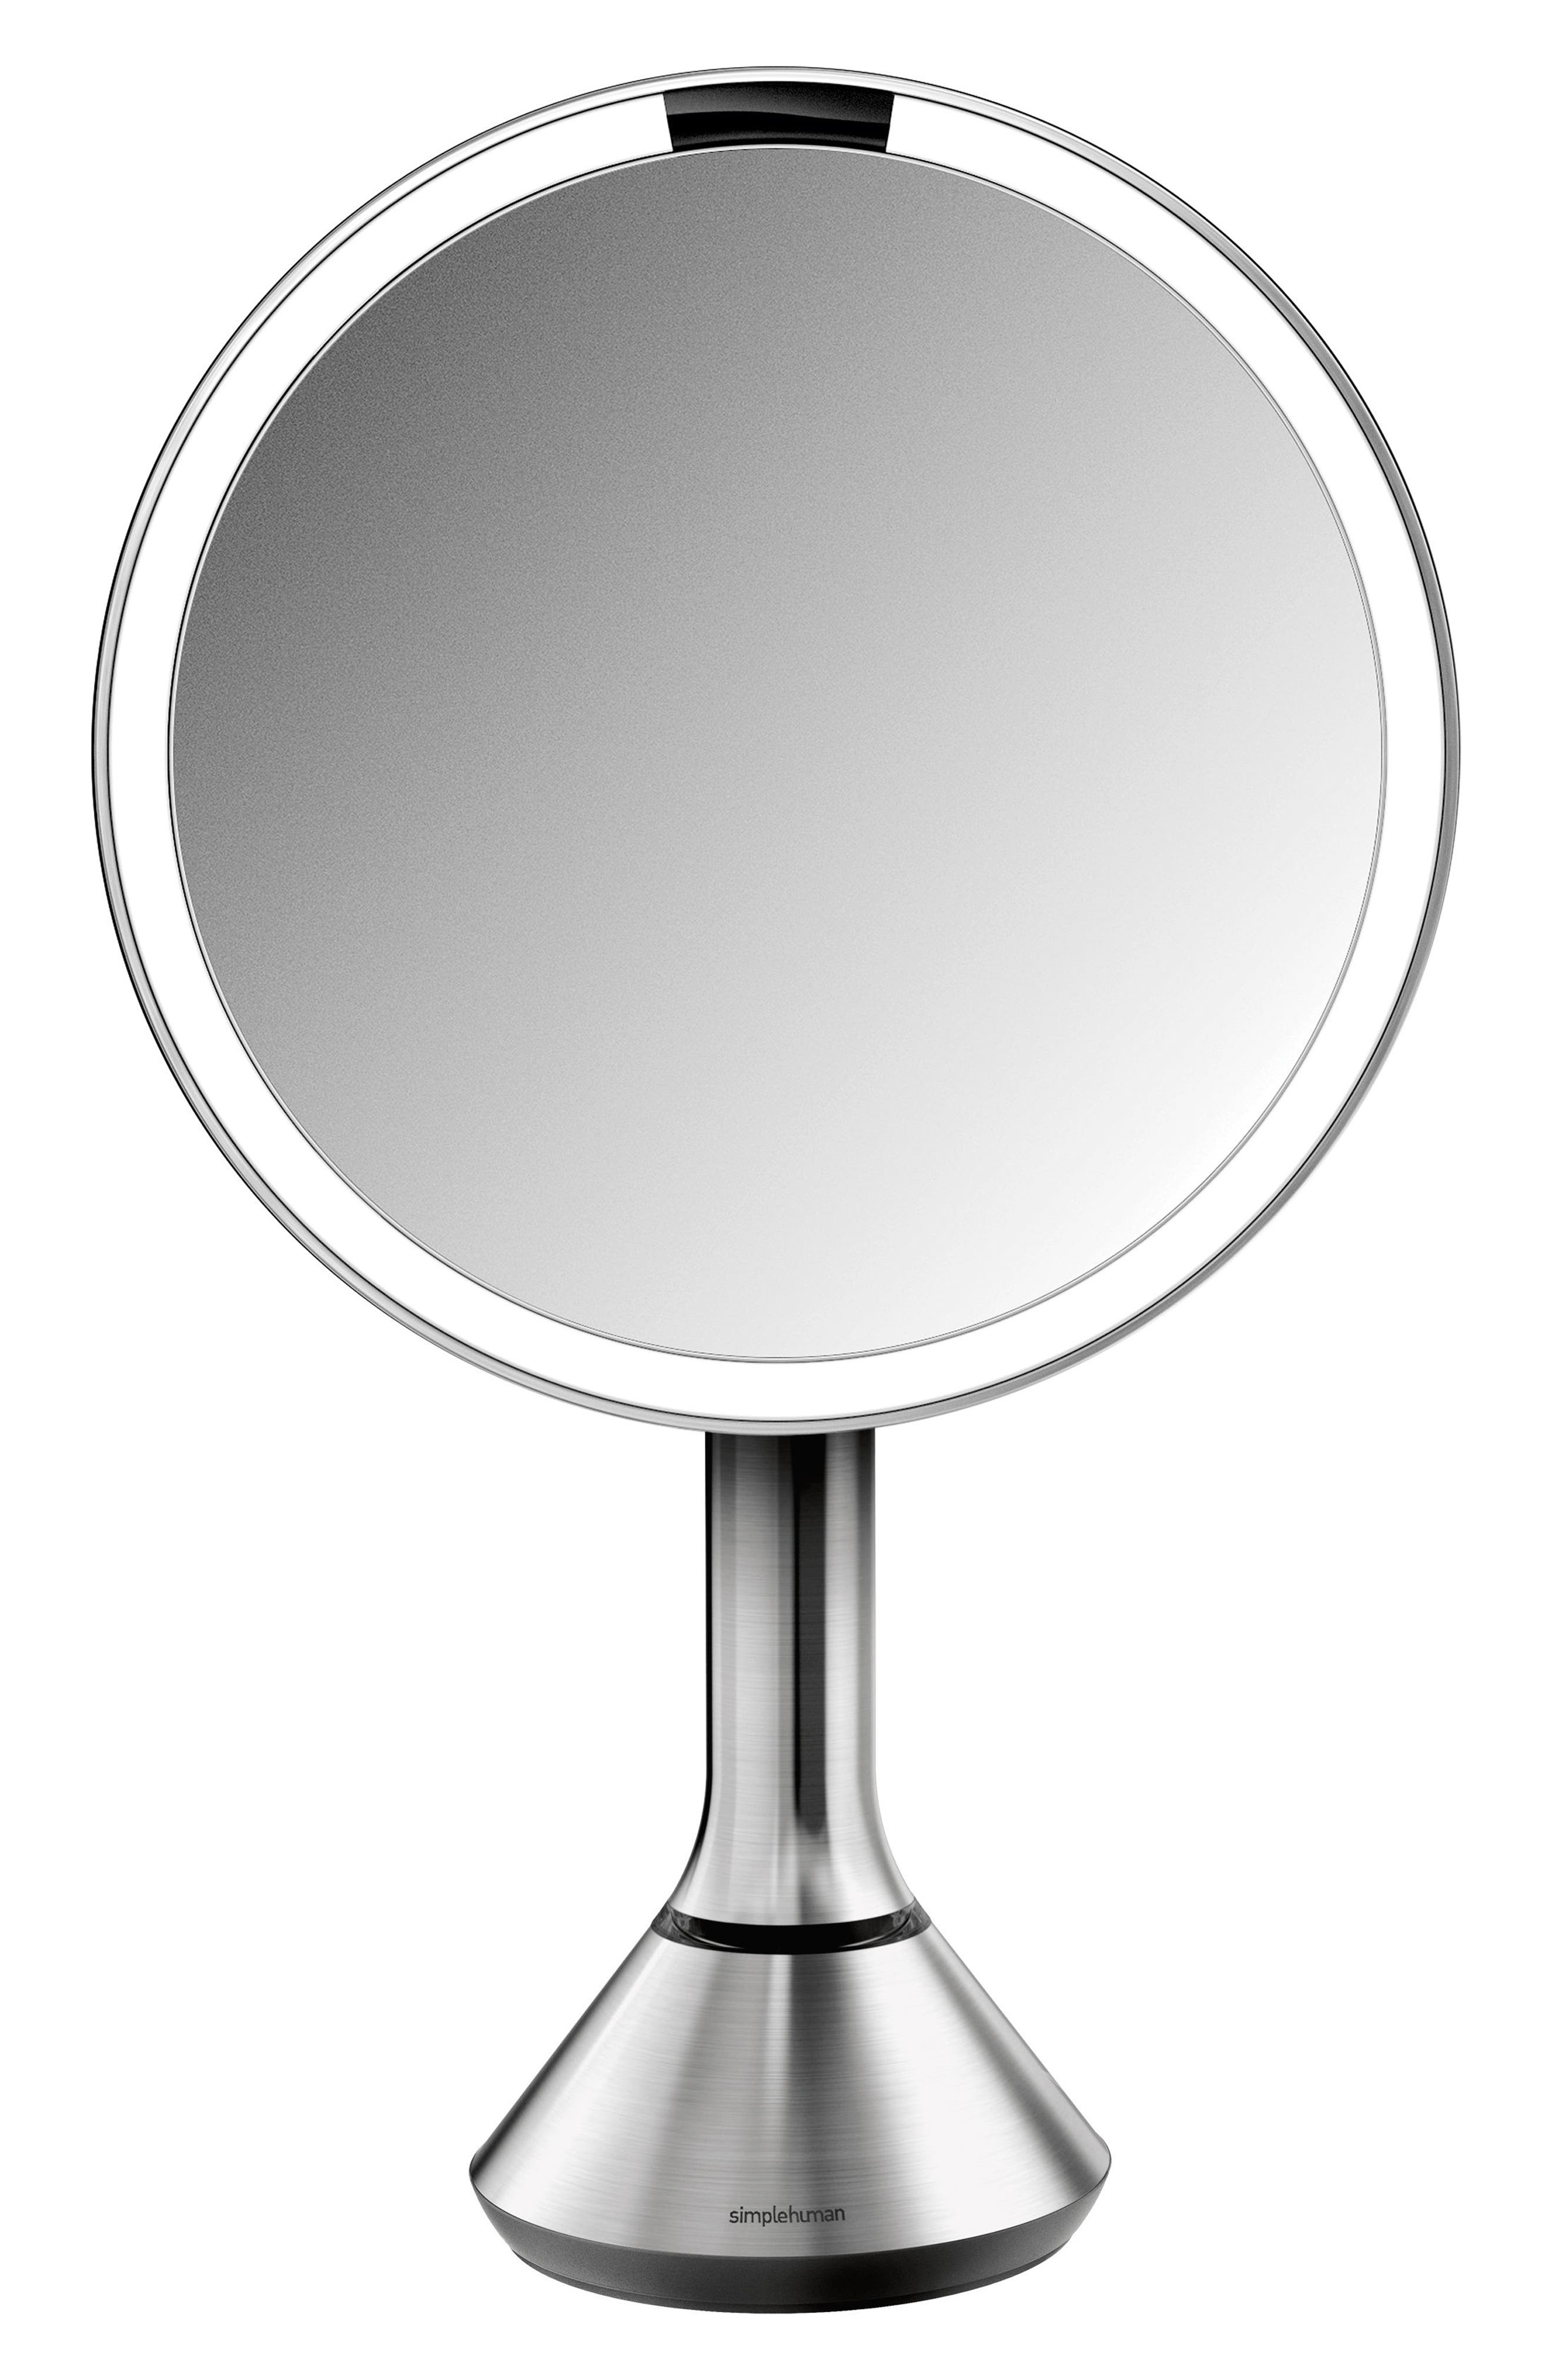 Eight Inch Sensor Mirror with Brightness Control,                         Main,                         color, BRUSHED STAINLESS STEEL